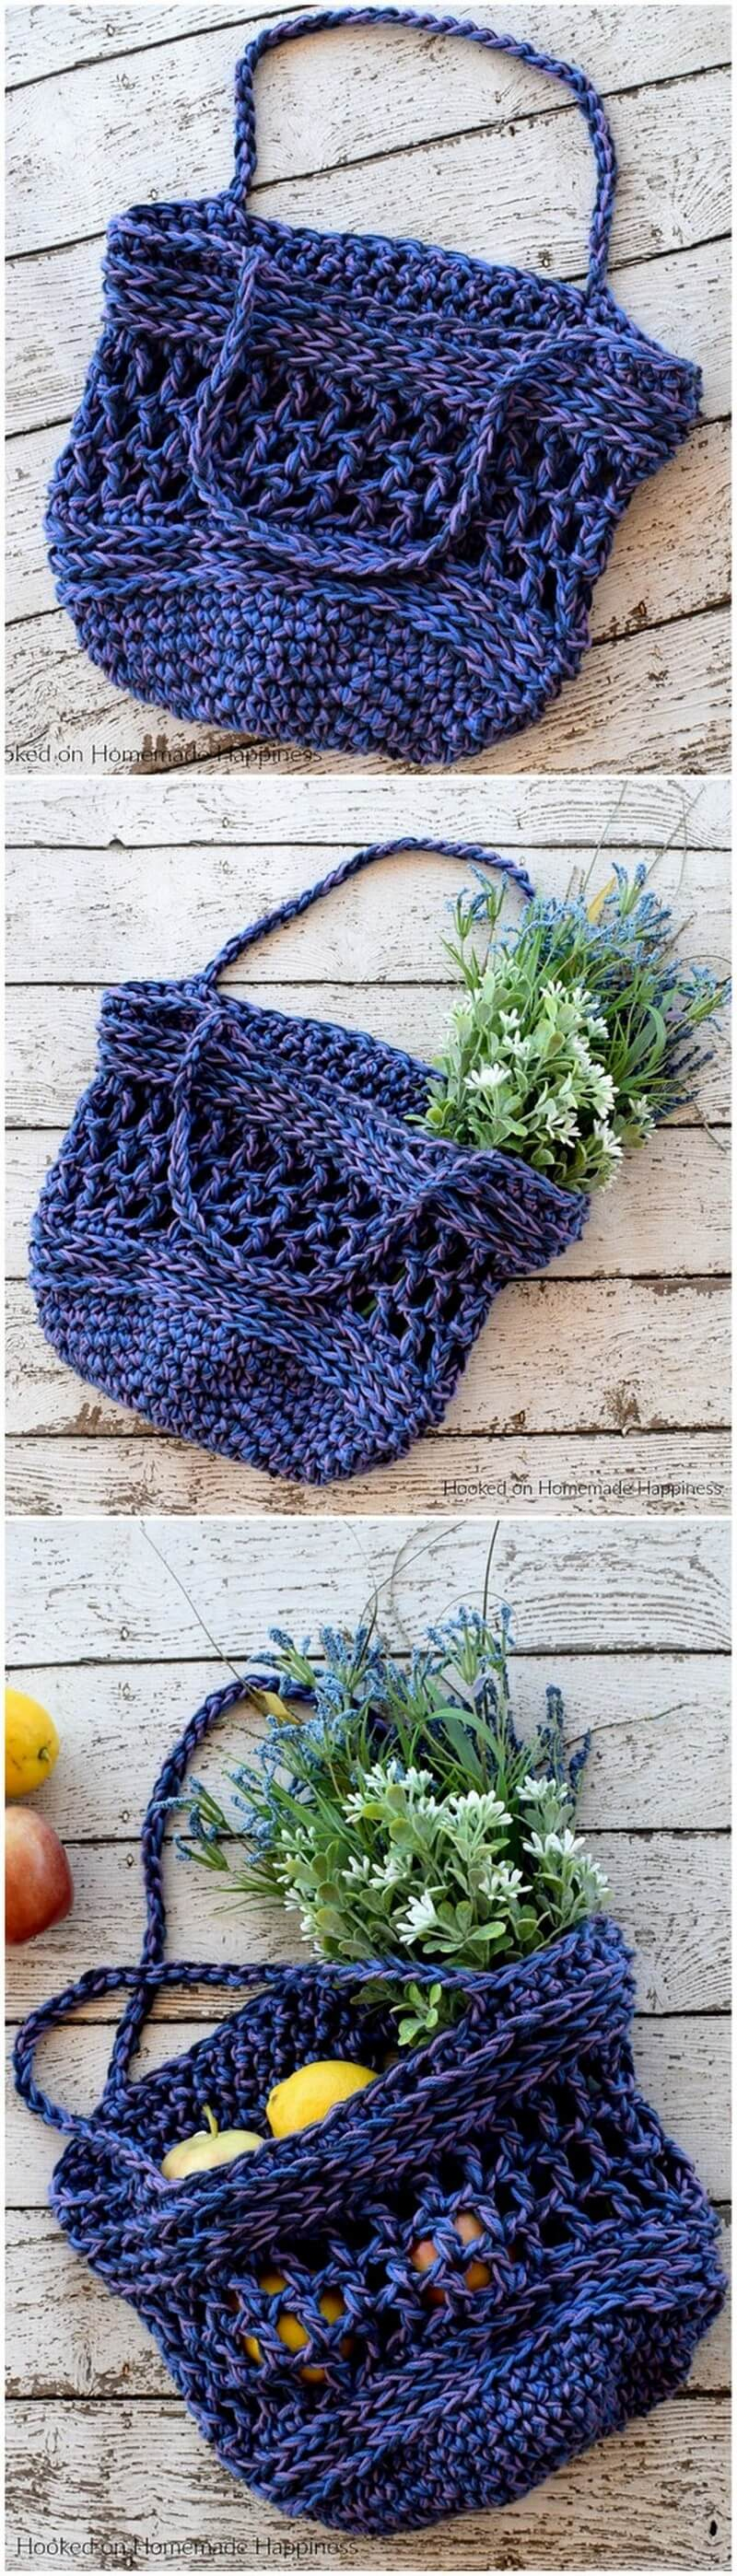 Crochet Bag Pattern (13)